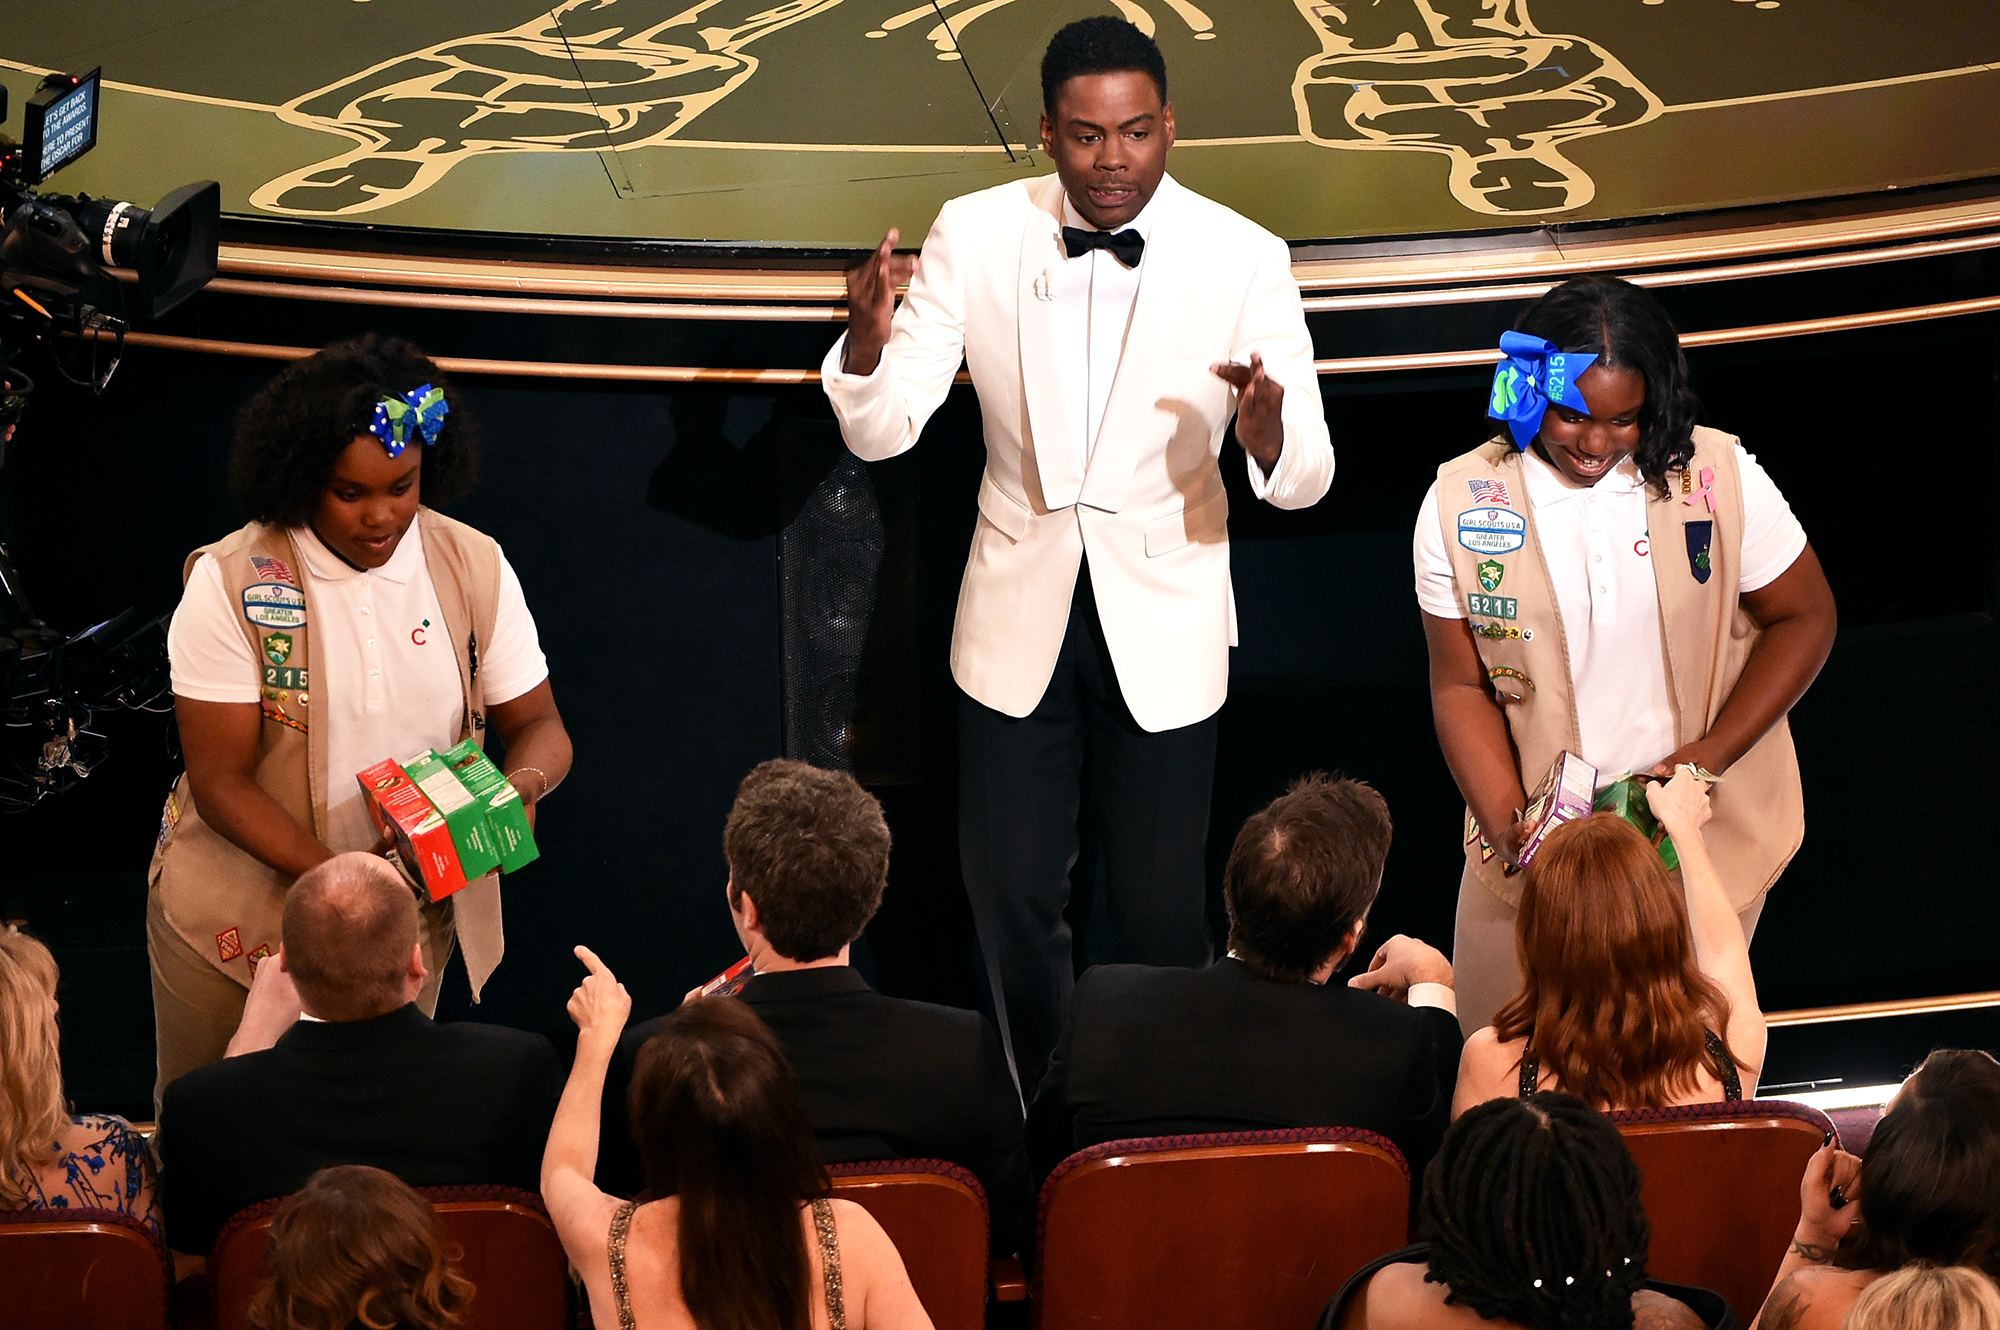 Let Them Eat! Melissa McCarthy, Gemma Chan and More Stars Who Brought Food to Awards Shows - When the comedian hosted the Oscars in 2016, he relied on his daughter's Girl Scout troop to provide some much-needed snacks.